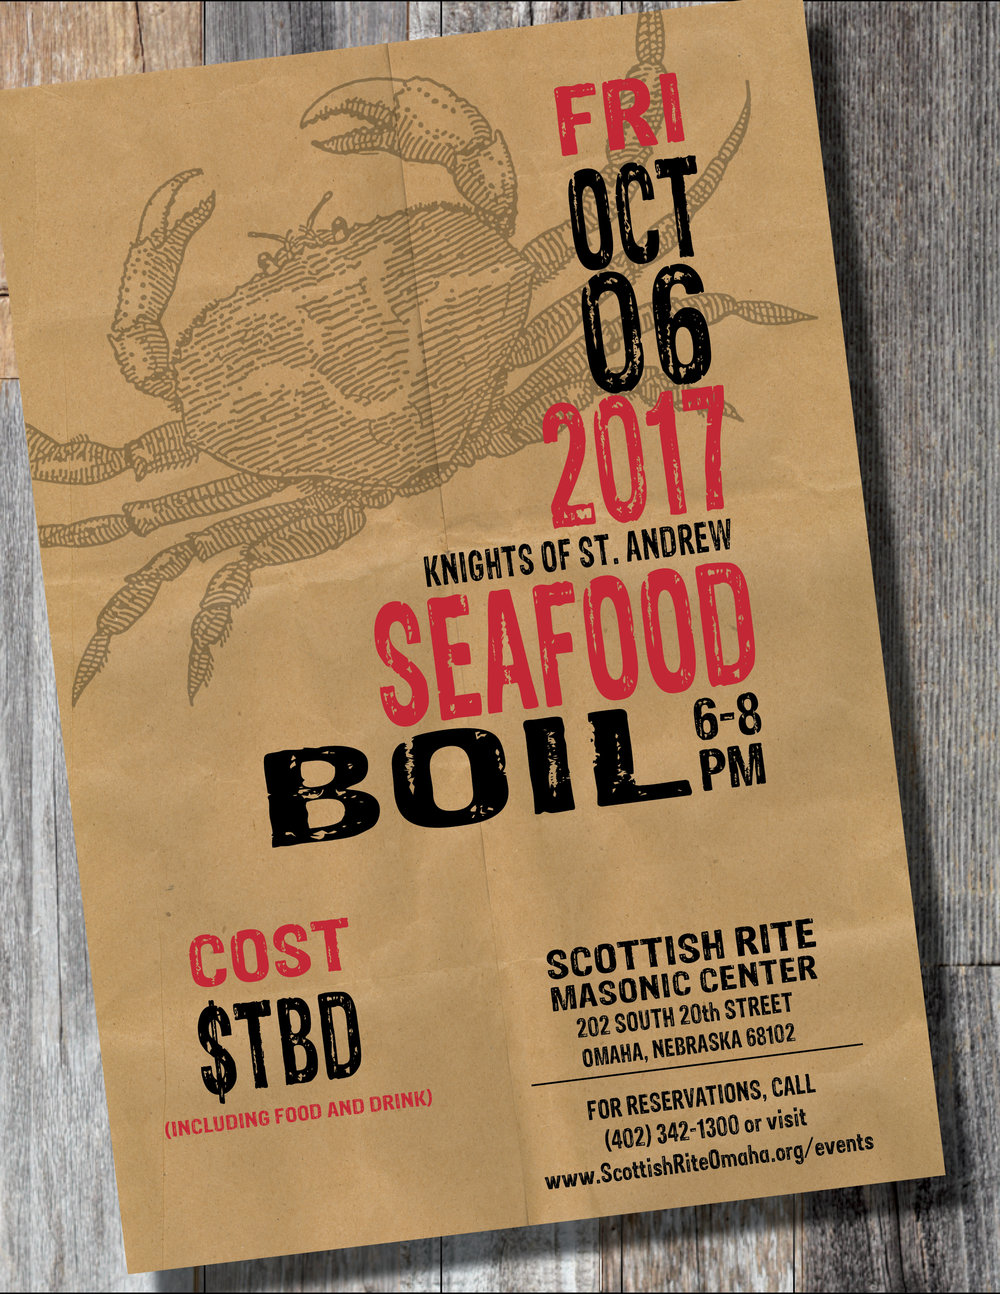 Click above image to download a PDF flier for the Seafood Boil